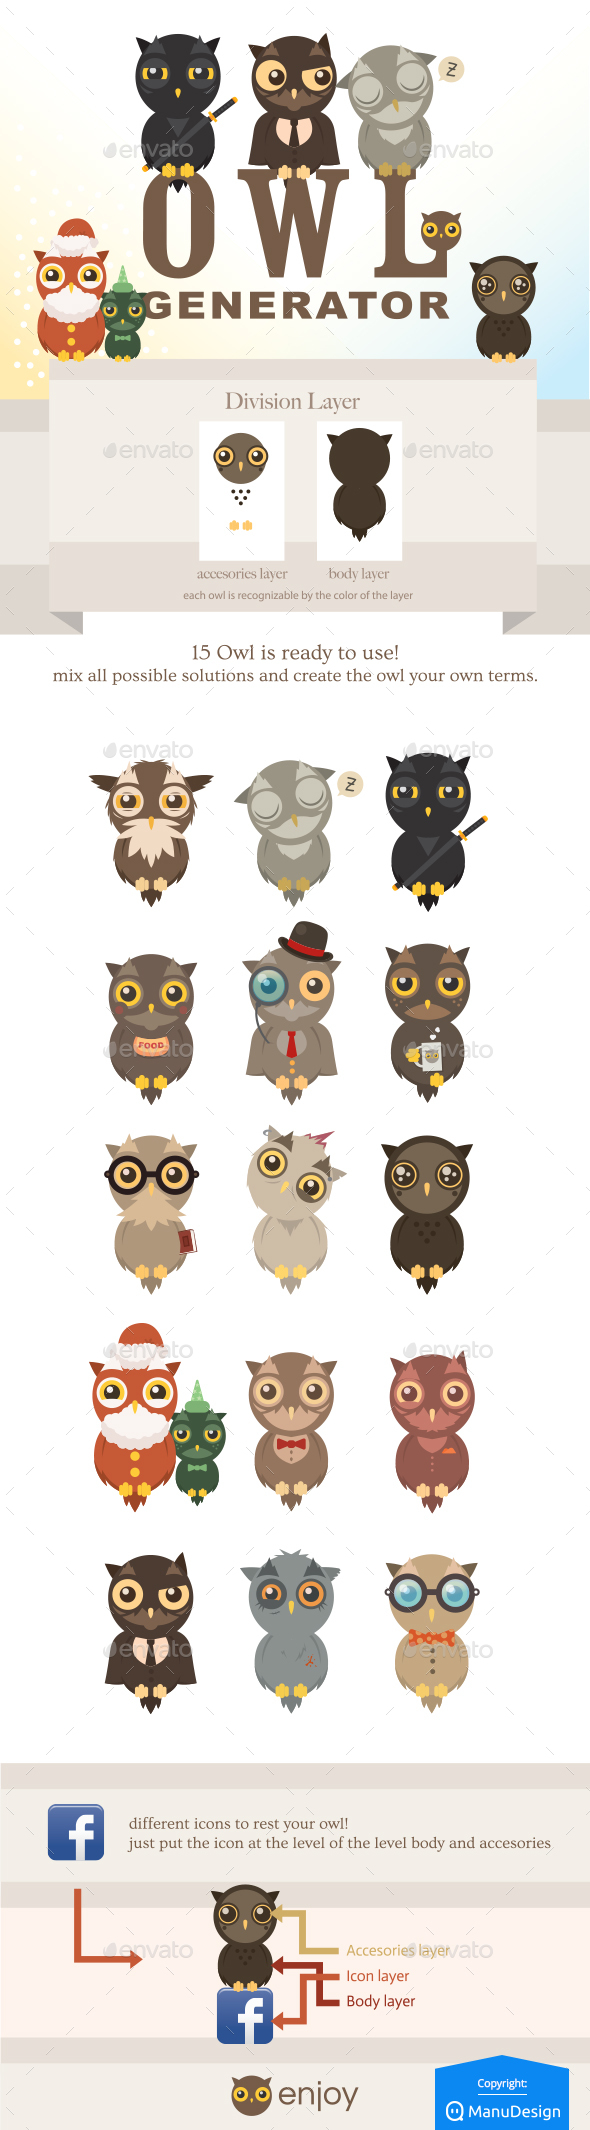 Owl Generation - Owl Generator - Animals Characters